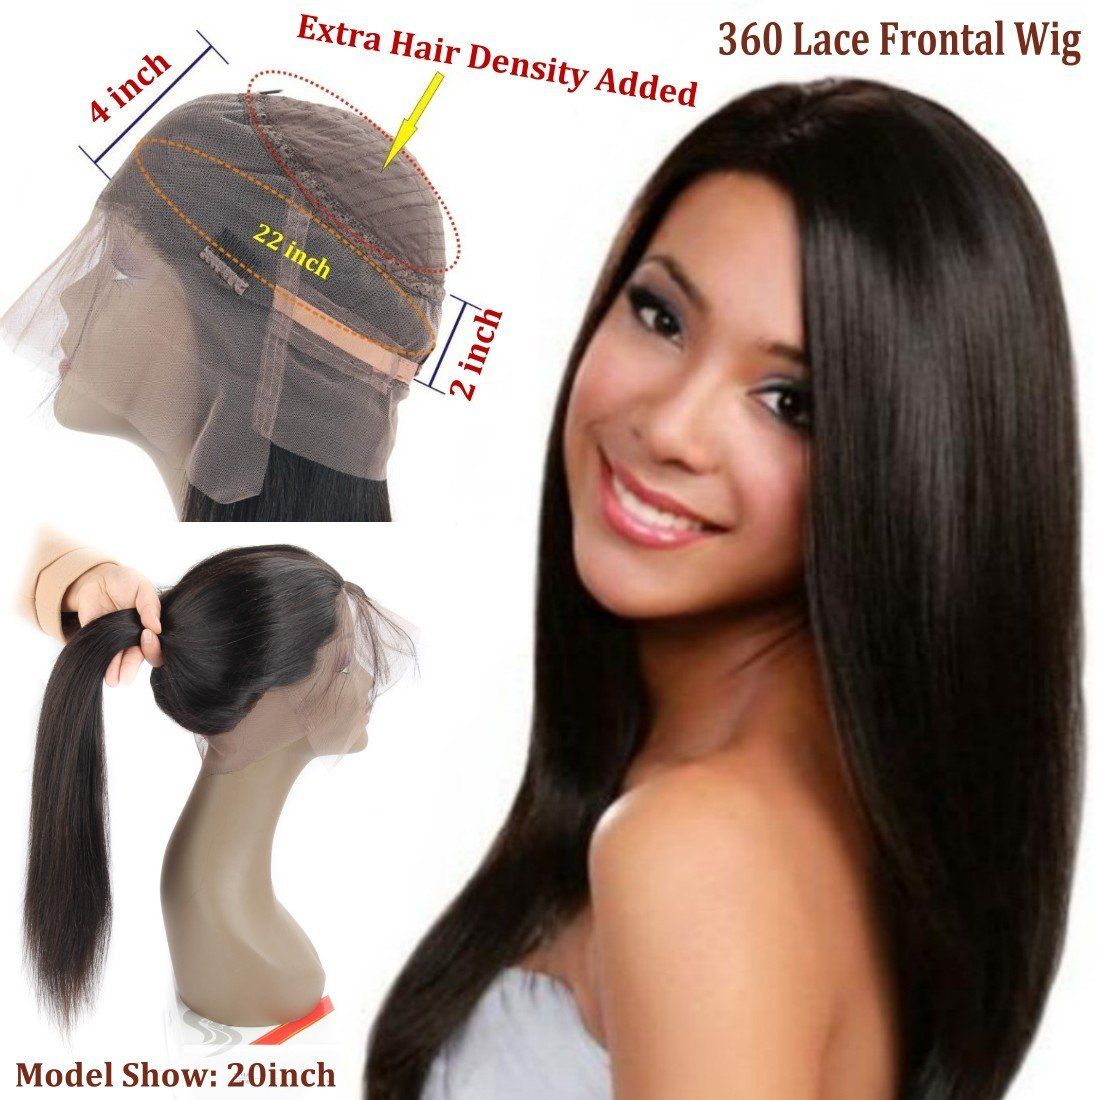 360 Frontal Lace Wig Straight 360 Lace Front Human Hair Wigs Peruvian Virgin 360 Lace Frontal Wig 130% Density with Pre Plucked Natural Hairline Baby Hair 360 Degree Lace Human Hair Wig (14inch) by QUEENA (Image #1)